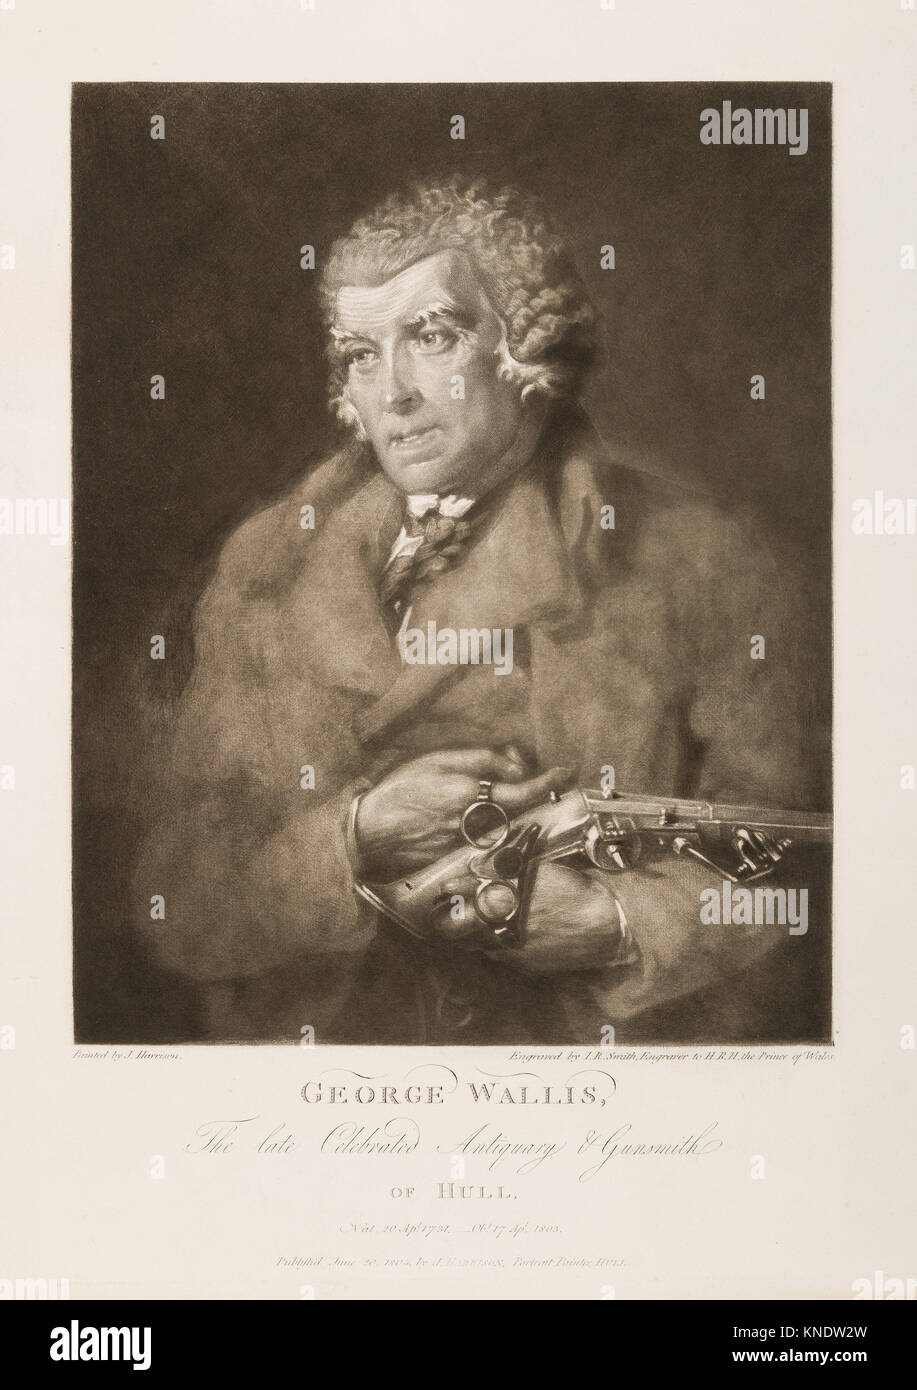 George Wallis, The Late Celebrated Antiquary and Gunsmith of Hull. Engraver: Engraved by John Raphael Smith (British, - Stock Image